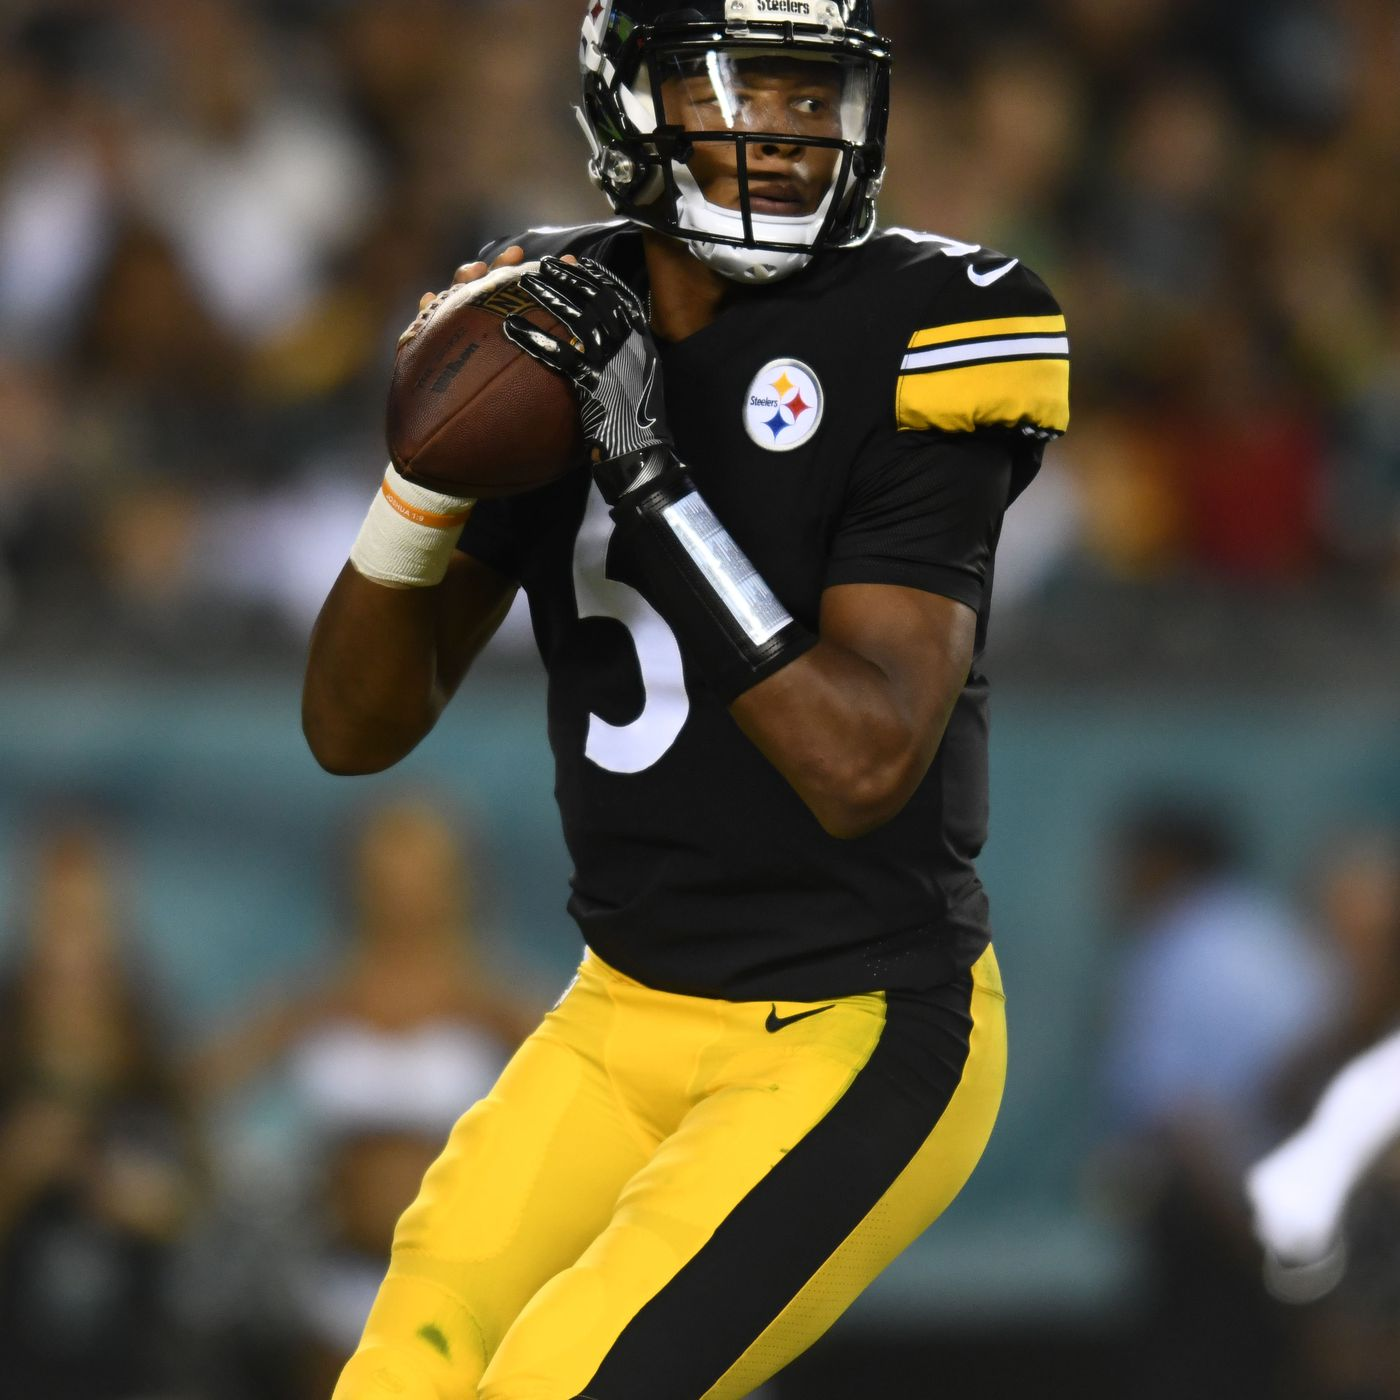 e014b451b Joshua Dobbs to start for Steelers vs. Panthers in 4th preseason game -  Behind the Steel Curtain